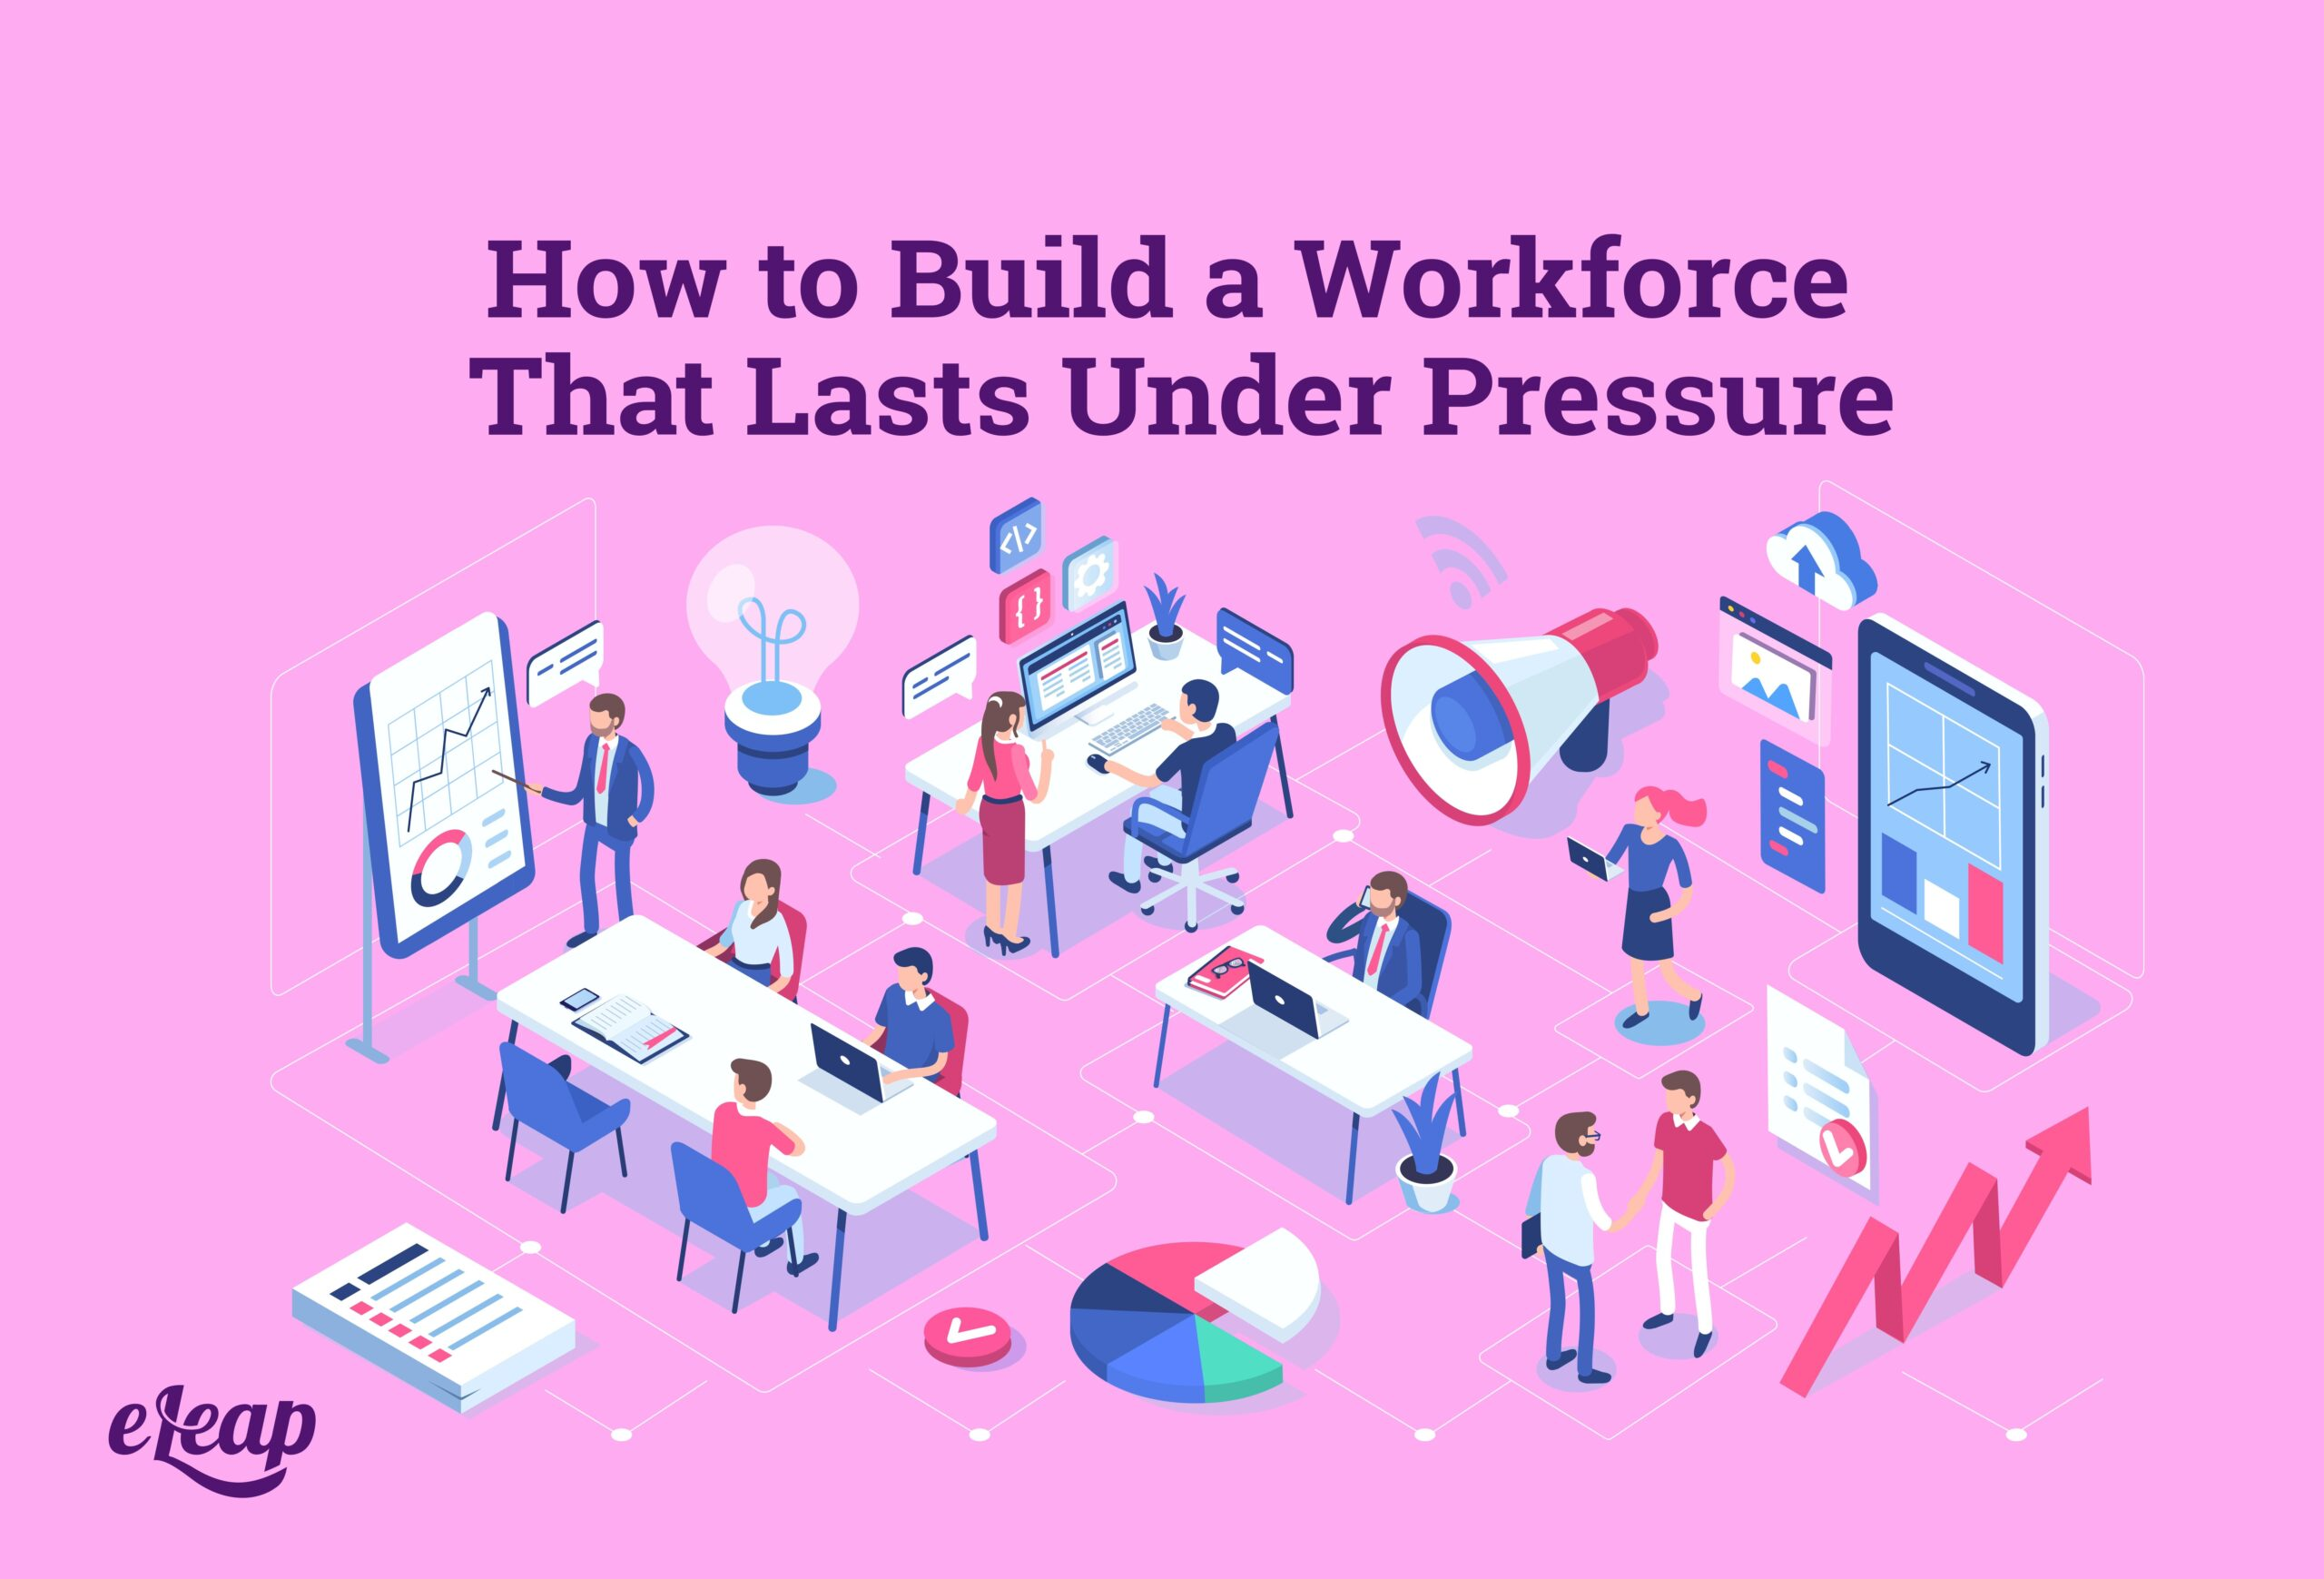 How to Build a Workforce That Lasts Under Pressure